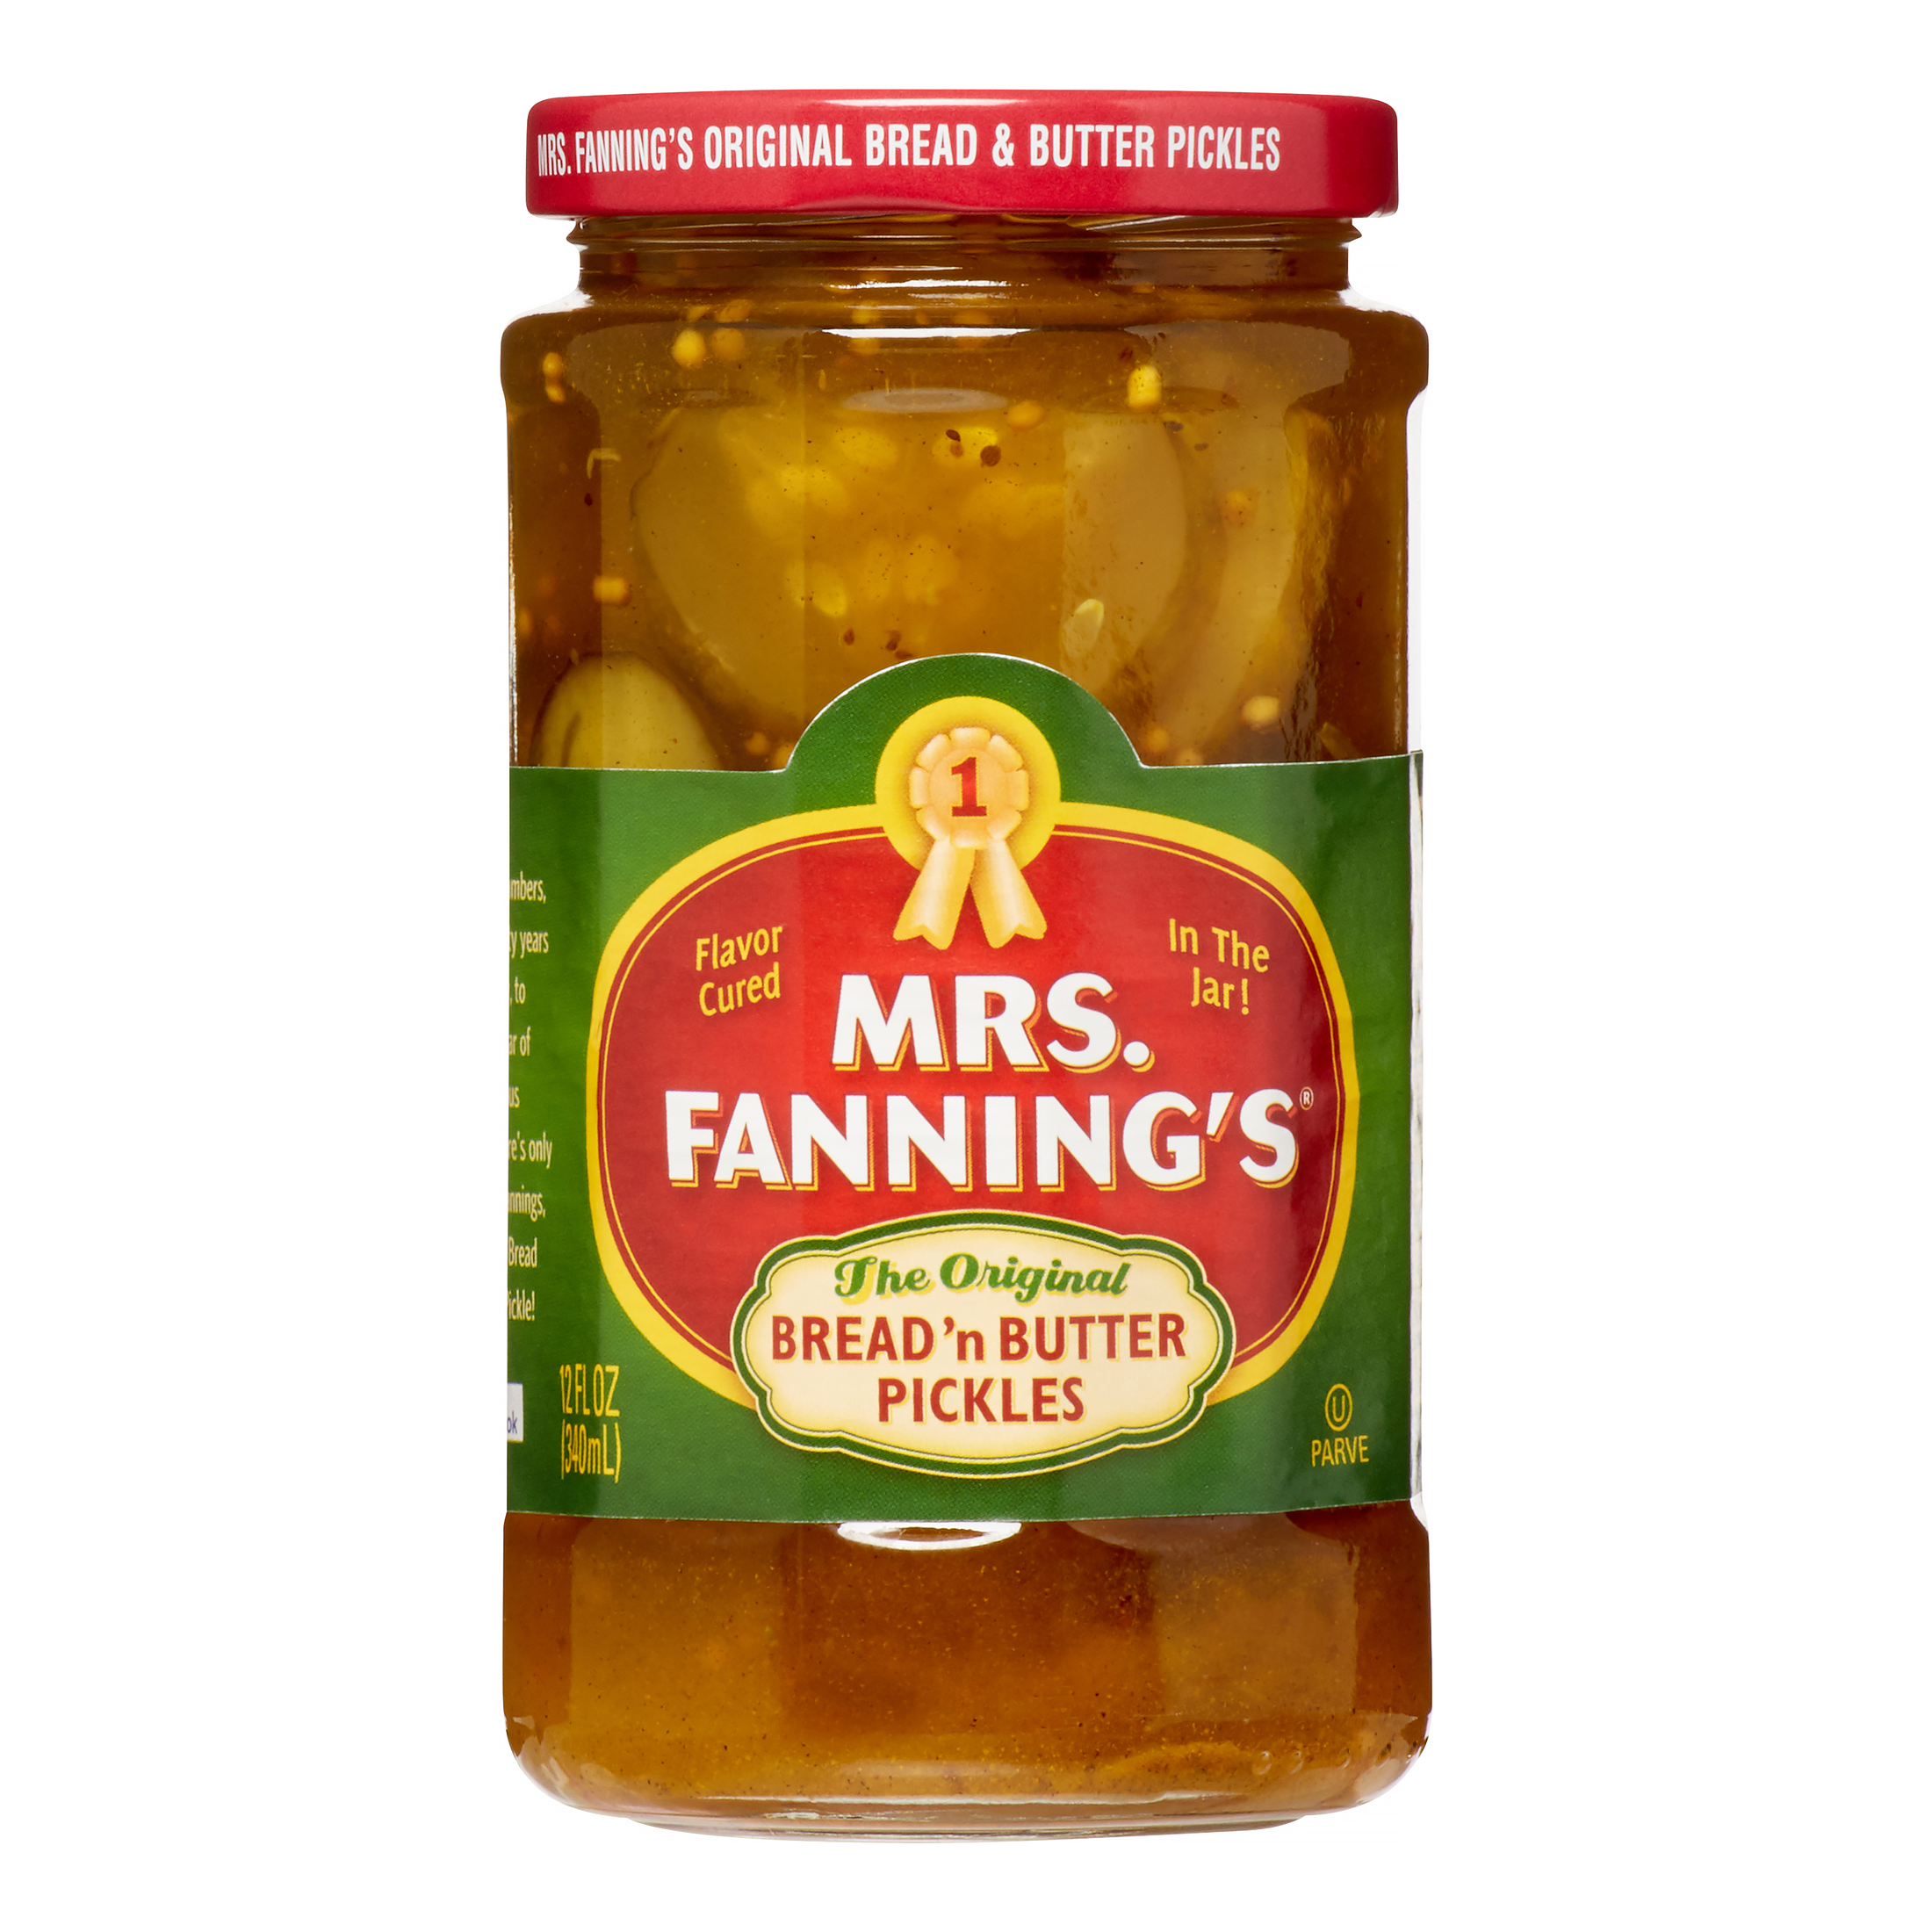 Mrs. Fanning's Bread'n Butter Pickles The Original, 12.0 FL OZ by B&G